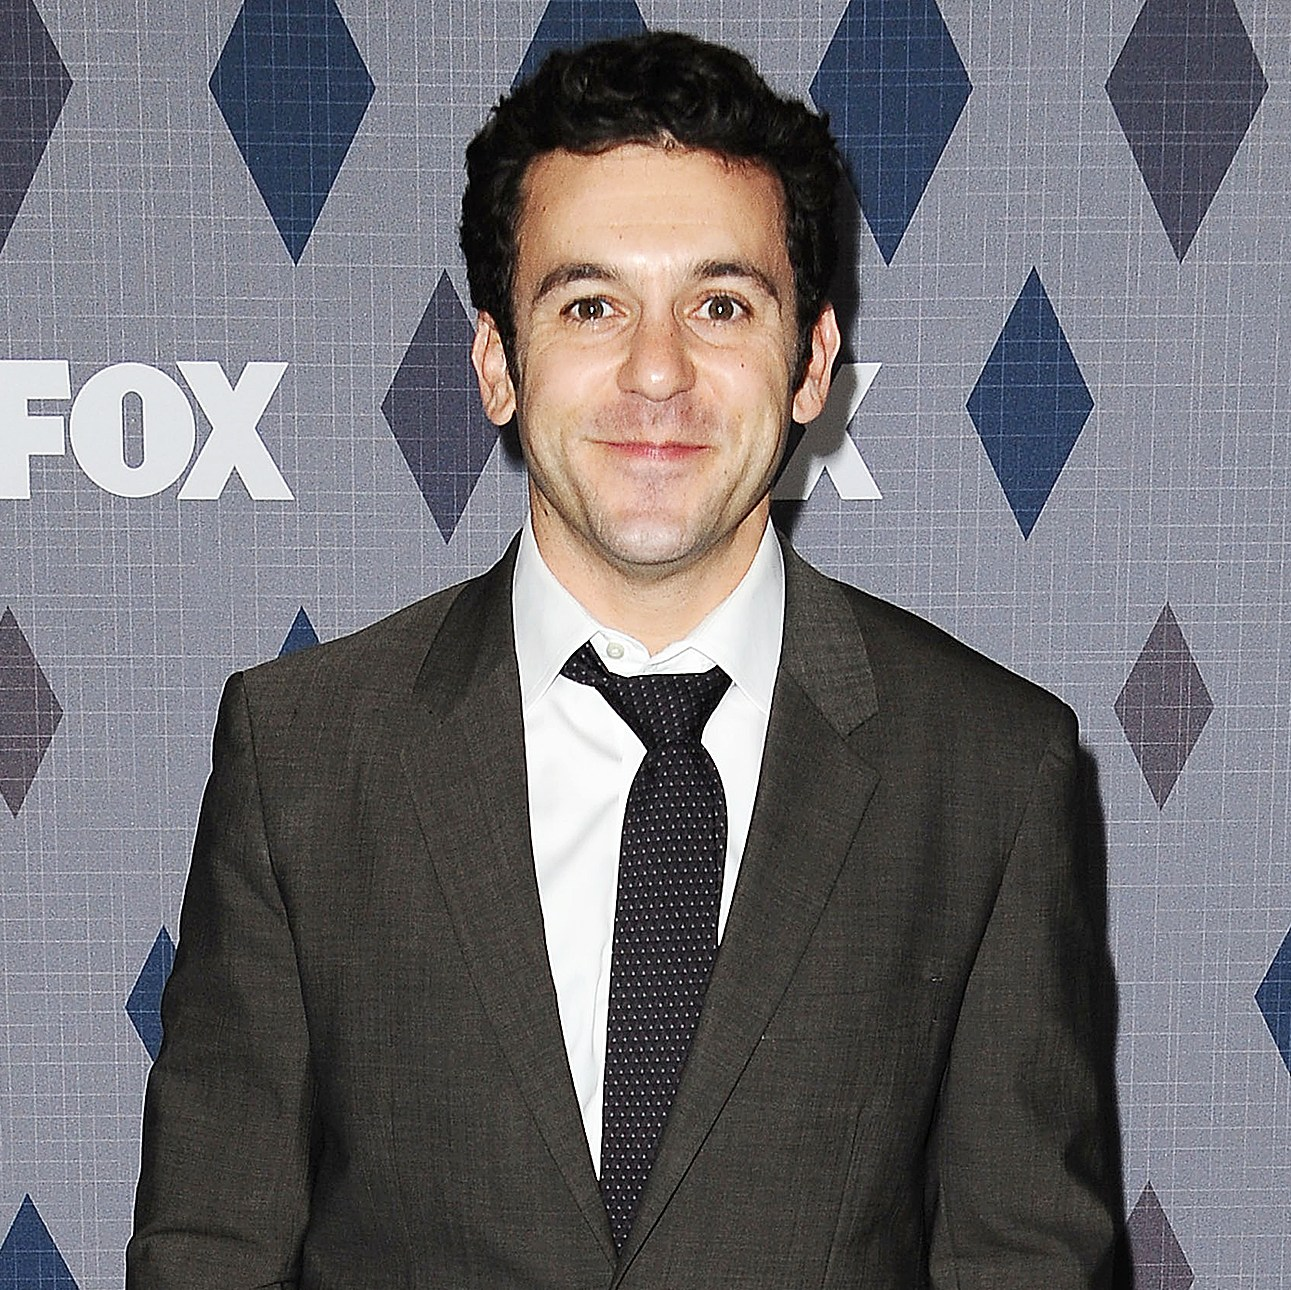 Fred Savage Being Sued For Alleged Harassment on Set of The Grinder